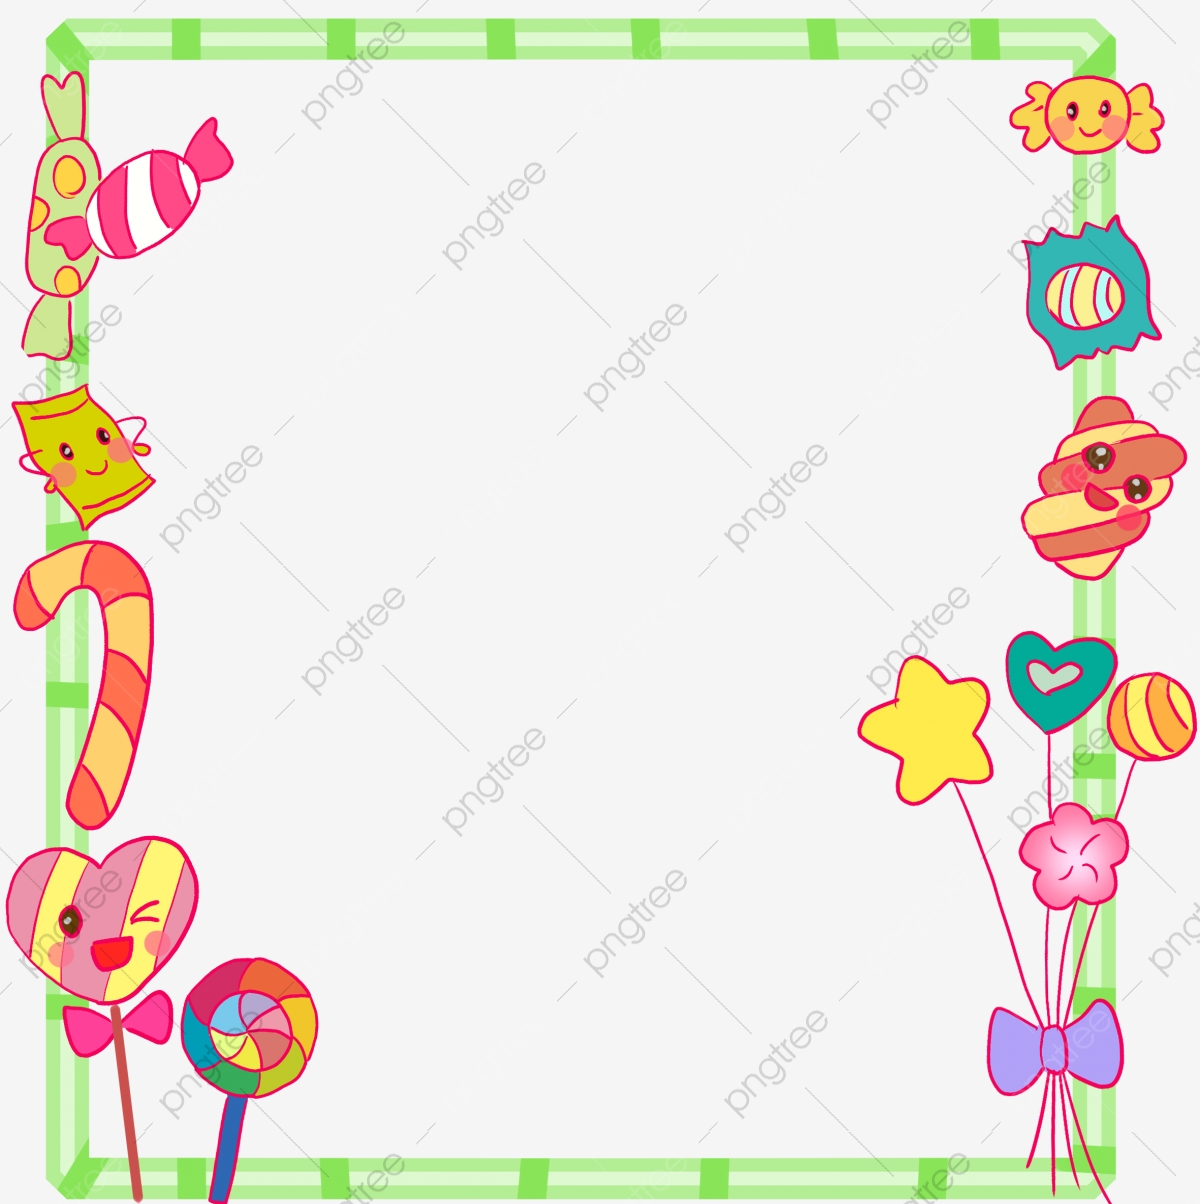 Border Clipart Png Images Vector And Psd Files Free Download On Pngtree